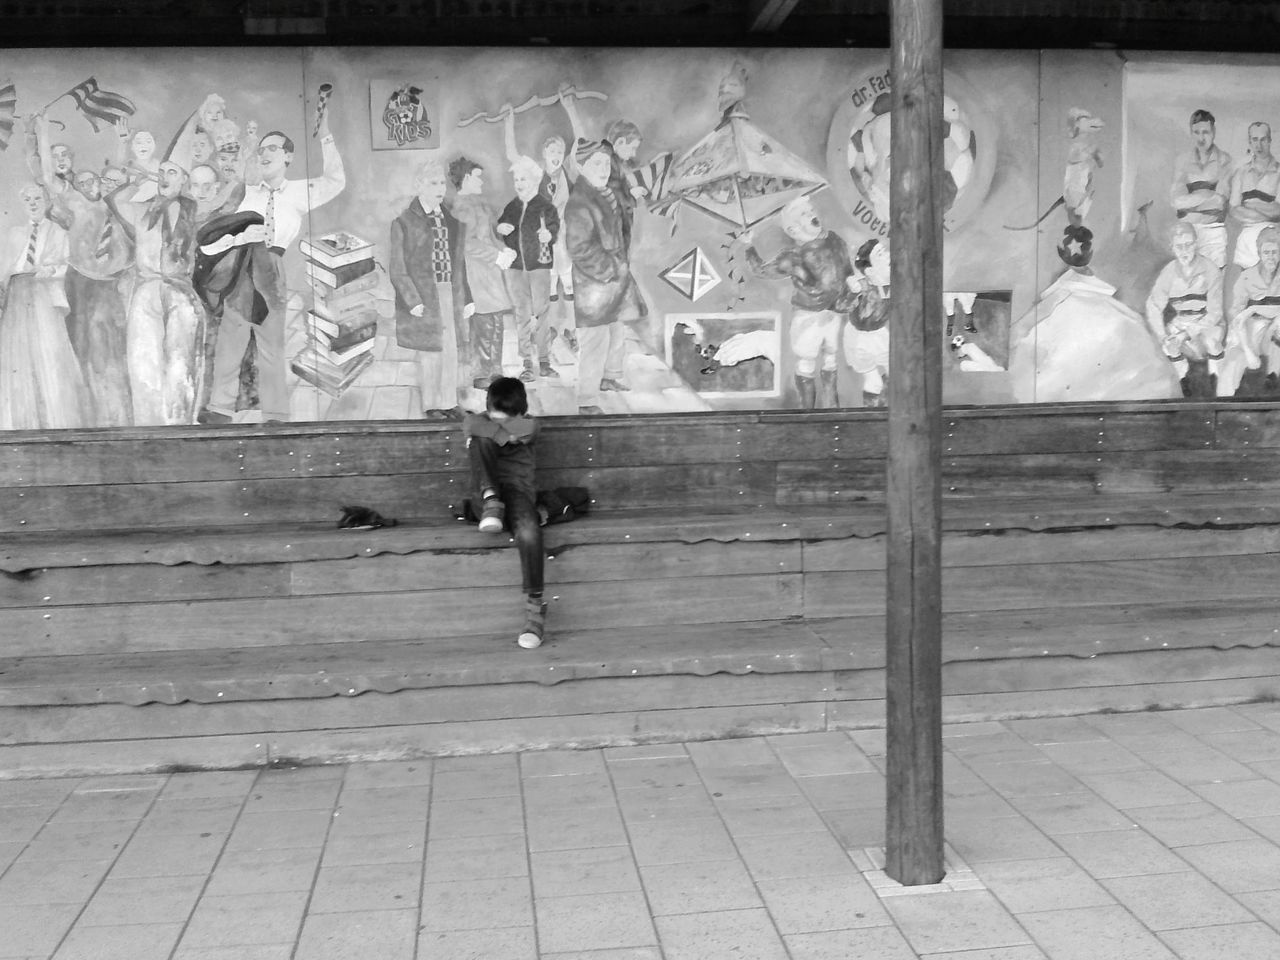 Full Length Real People Built Structure Outdoors One Person Eyemblackandwhite Black And White Photography Eyeemphotography EyeEm Gallery Graffiti Wall Playing Soccer Emotions Tired